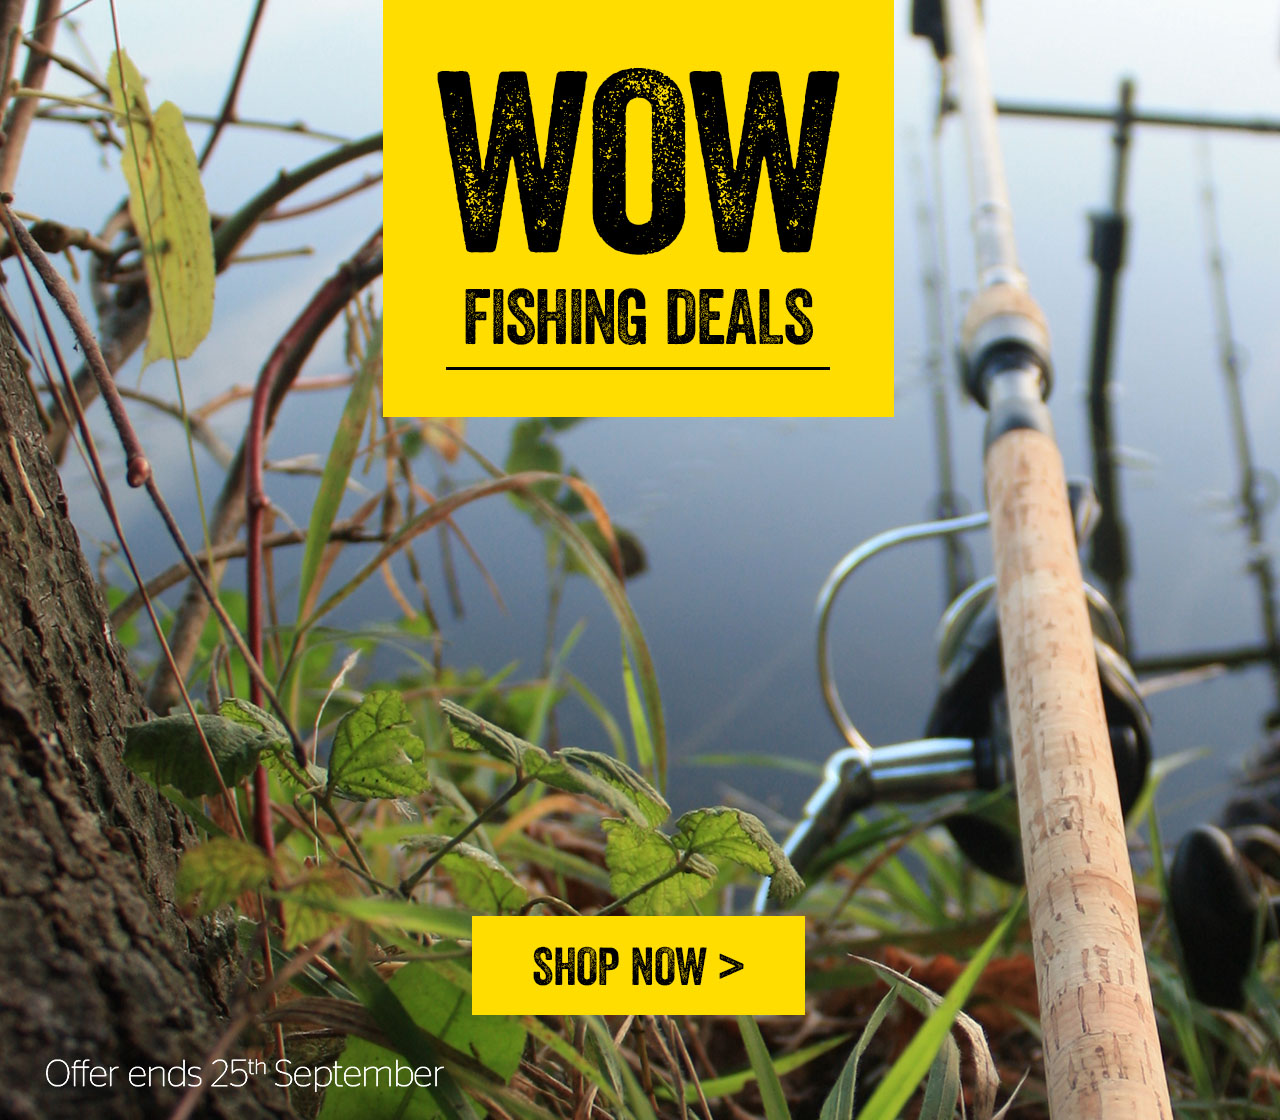 Wow-deals Fishing